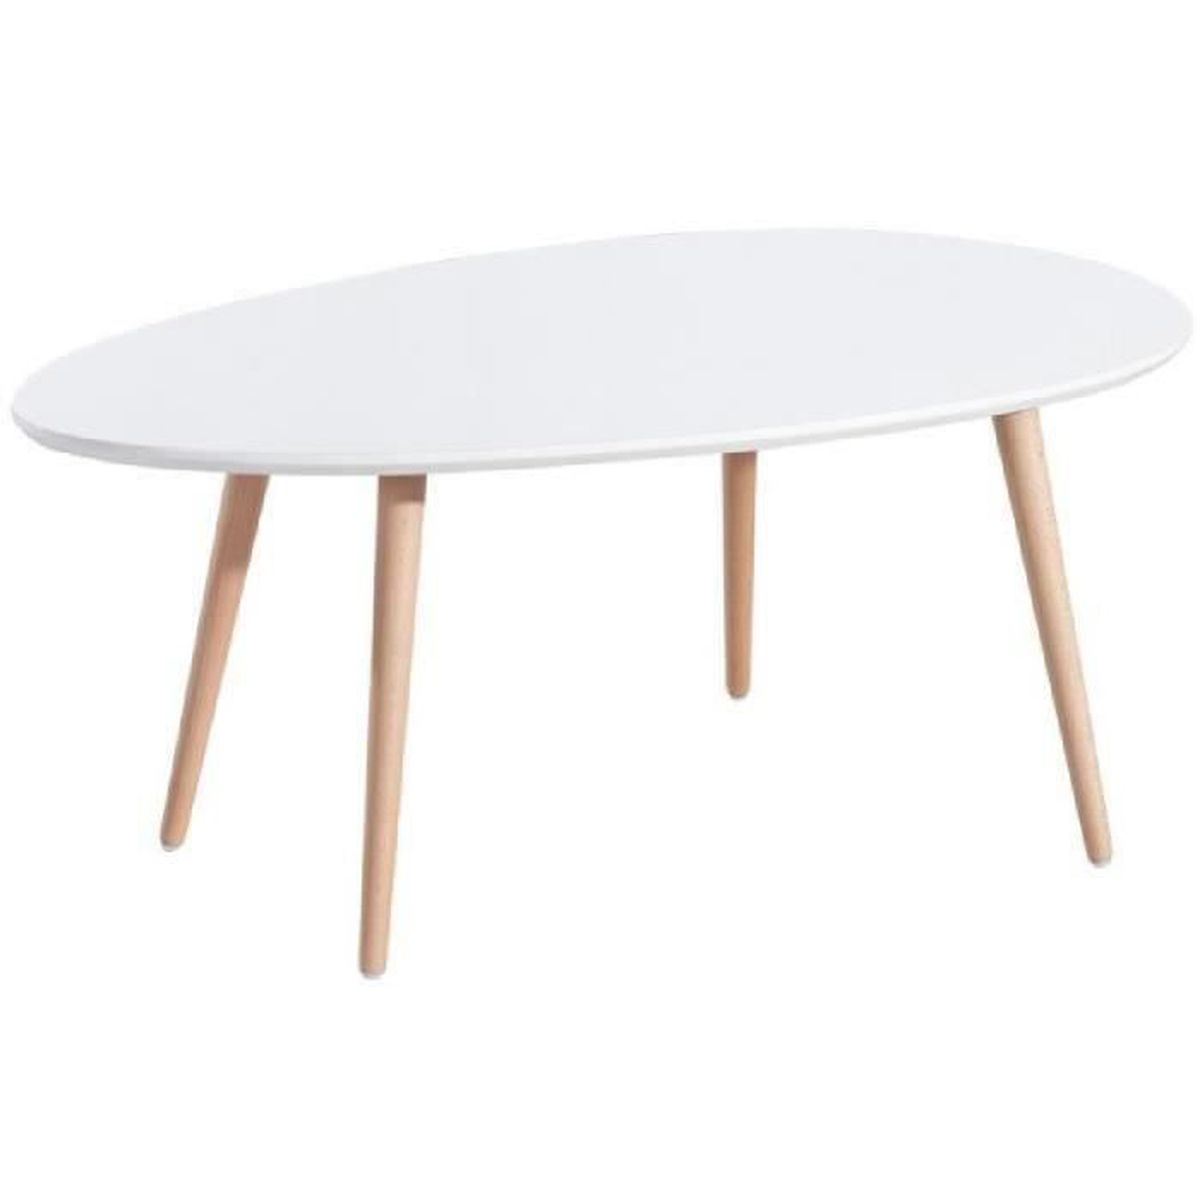 Stone lot de 2 tables basses blanc et gris laqu achat - Table a manger retractable ...